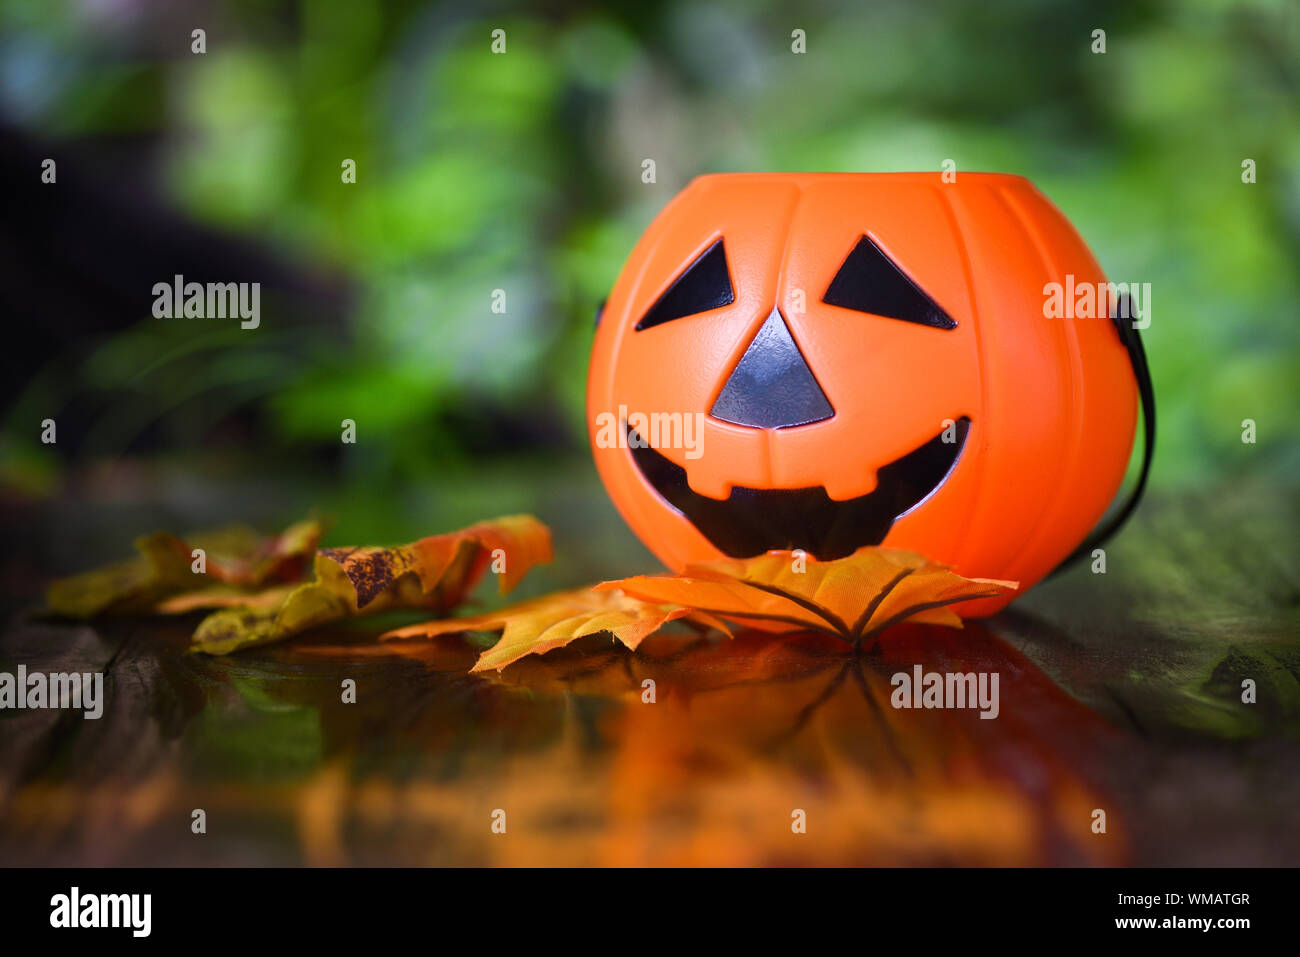 Halloween Pumpkin Accessories.Halloween Background Decorated Holidays Festive Concept Leaves Autumn Pumpkin Halloween Decorations For Party Accessories Object On Wooden Nature Gr Stock Photo Alamy